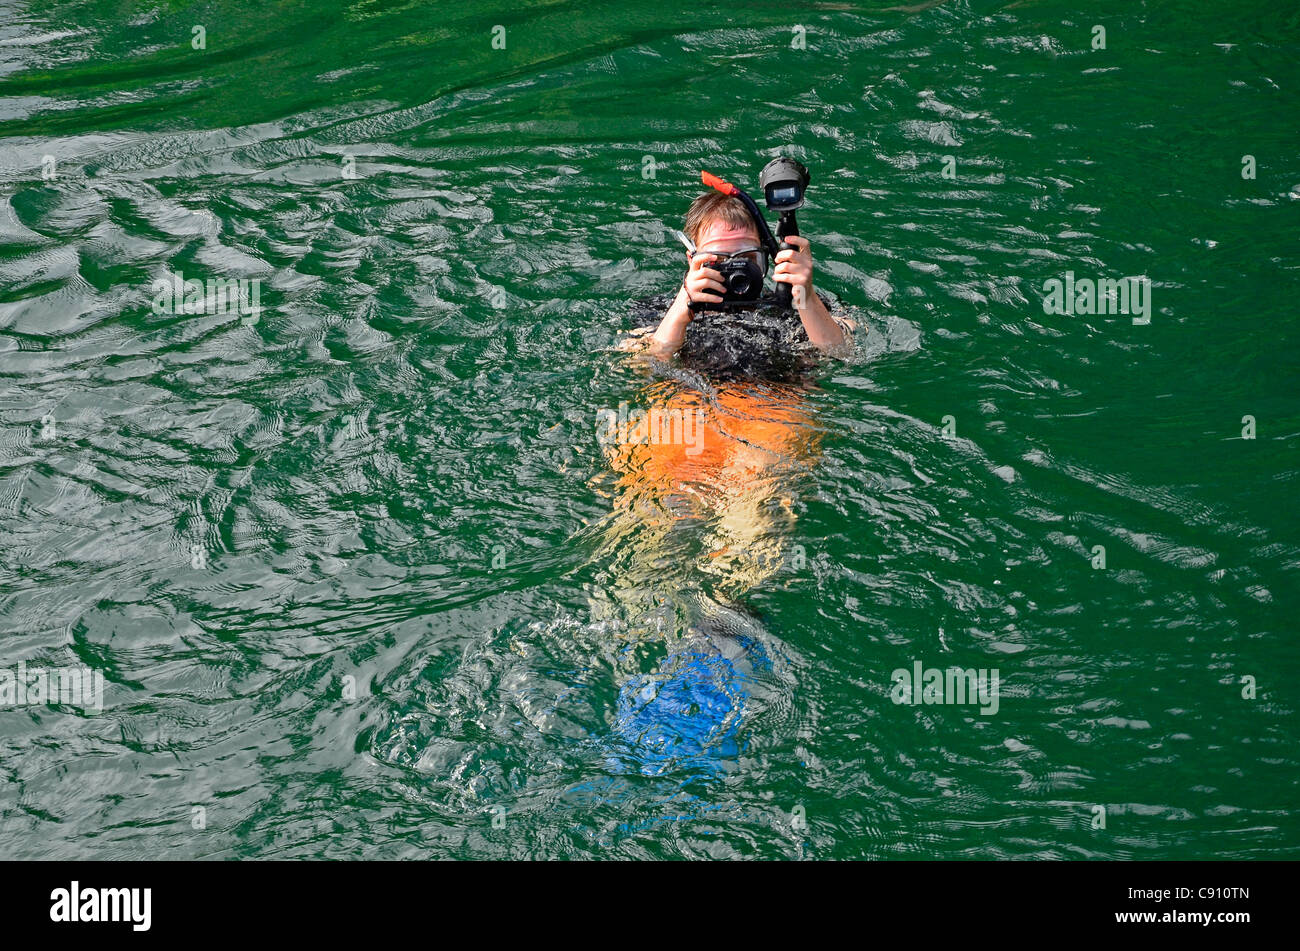 Tourist with underwater camera, Raja Ampat islands near West Papua, Indonesia in the coral triangle, Pacific Ocean. Stock Photo